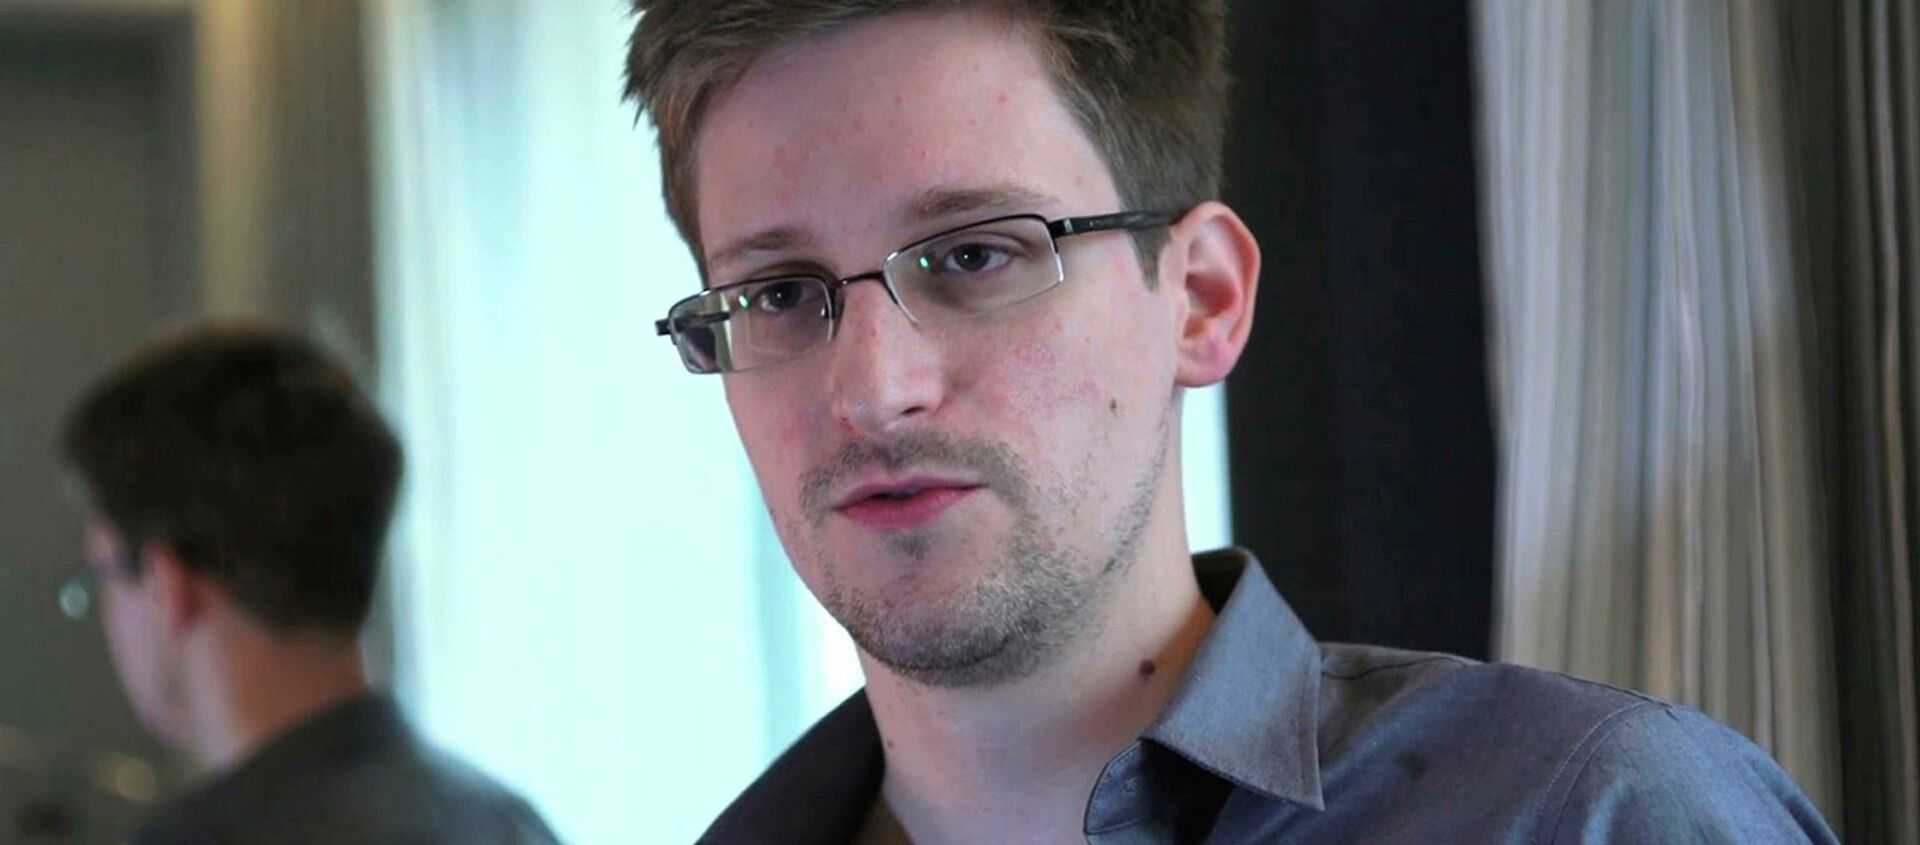 Documents leaked by former NSA contractor Edward Snowden reveal that the NSA has technology to convert recorded conversations to text that can be searched for terms like detonator,  Baghdad, or Musharaf. - Sputnik International, 1920, 18.08.2021